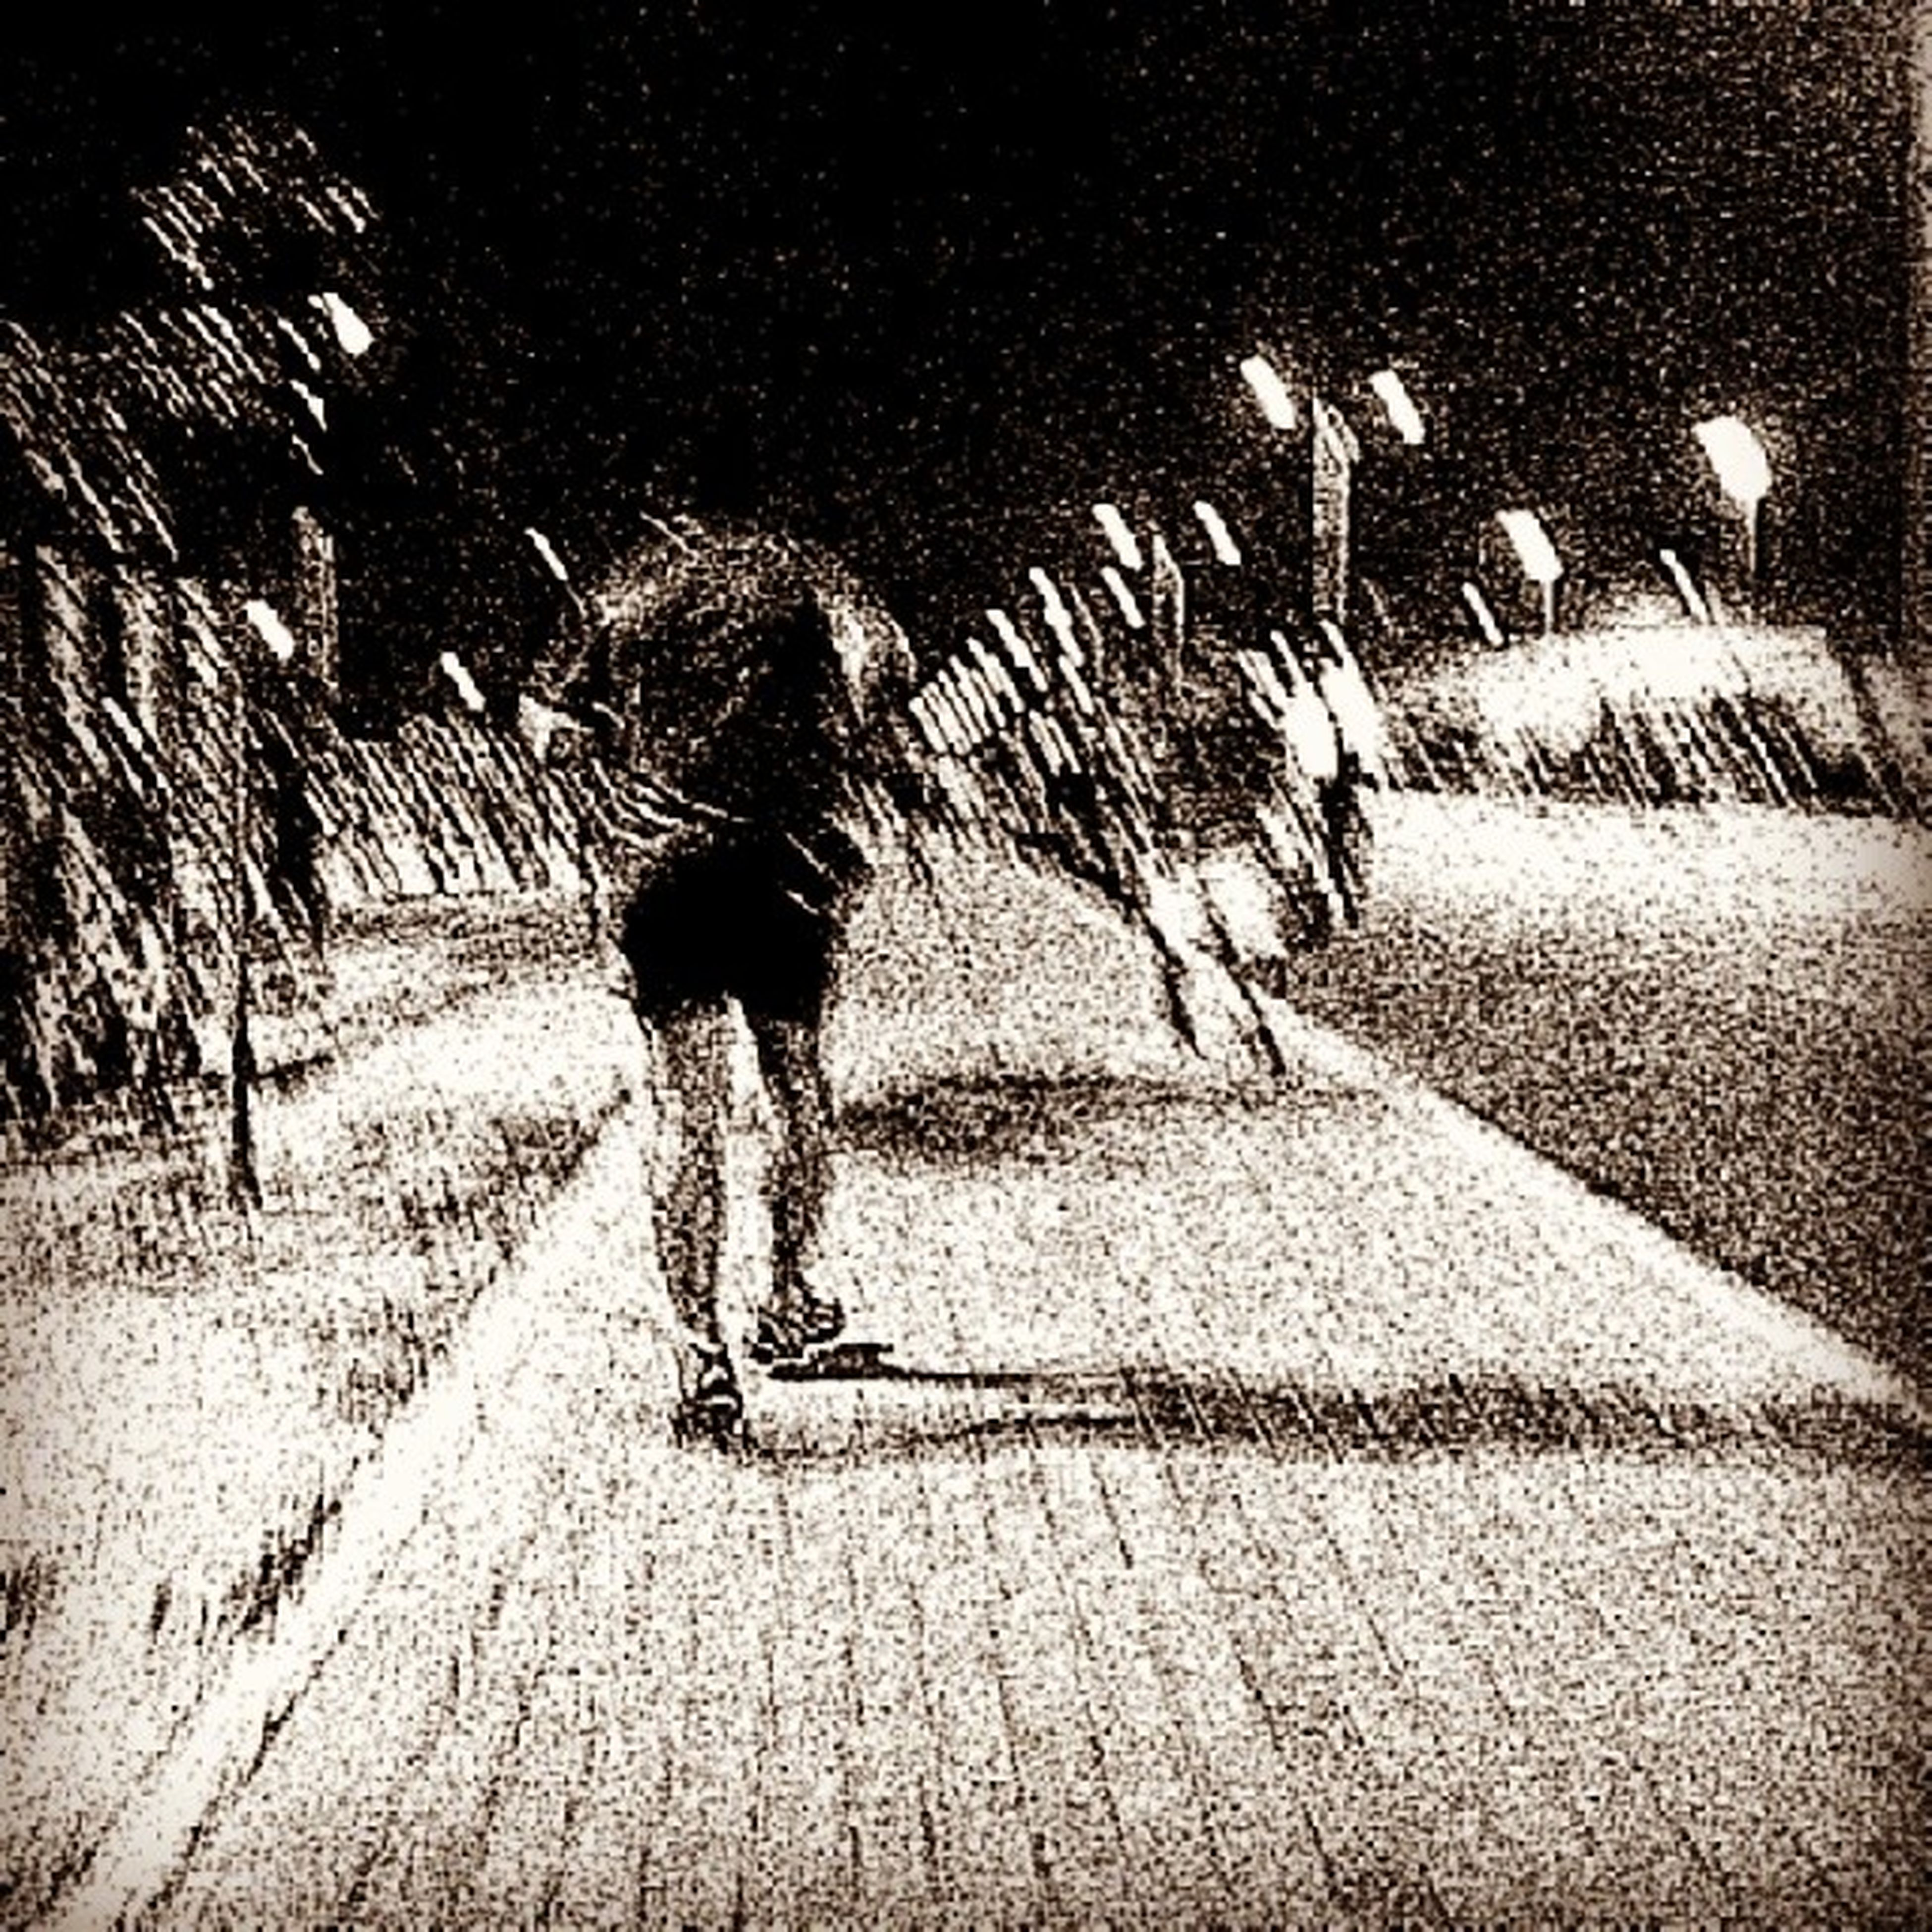 full length, lifestyles, shadow, walking, leisure activity, men, bicycle, street, night, silhouette, motion, on the move, sunlight, rear view, road, outdoors, person